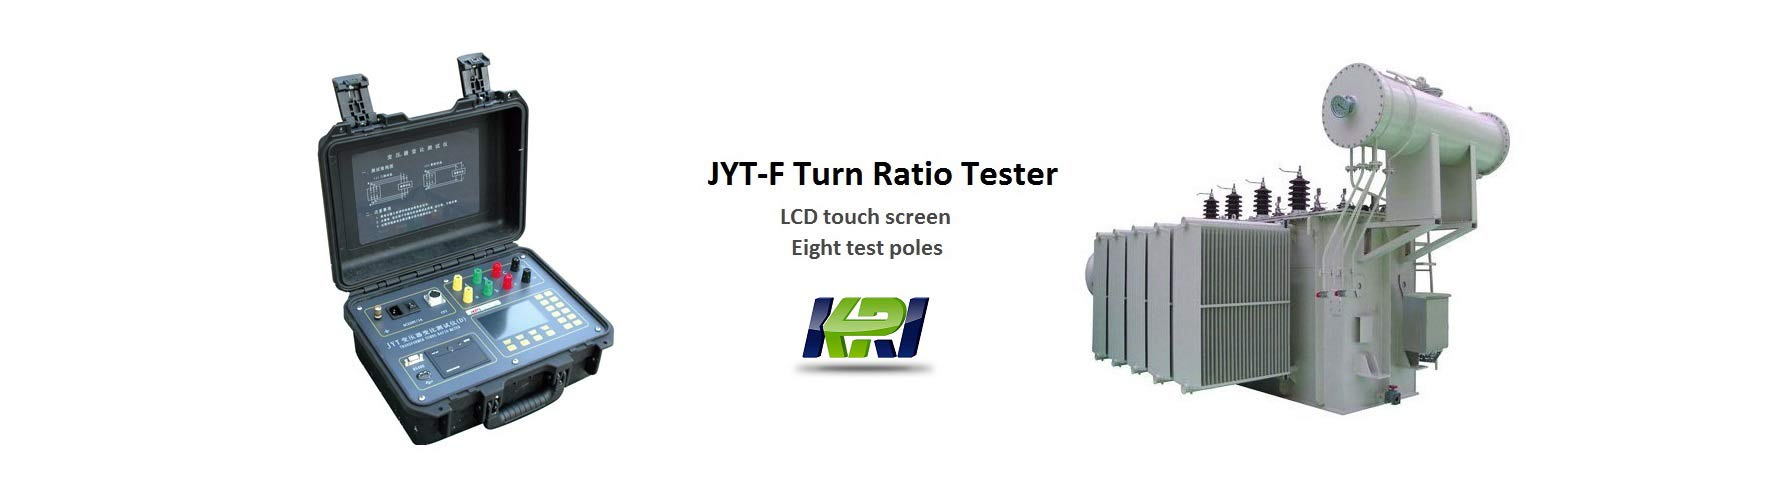 JYT-F turn ratio tester